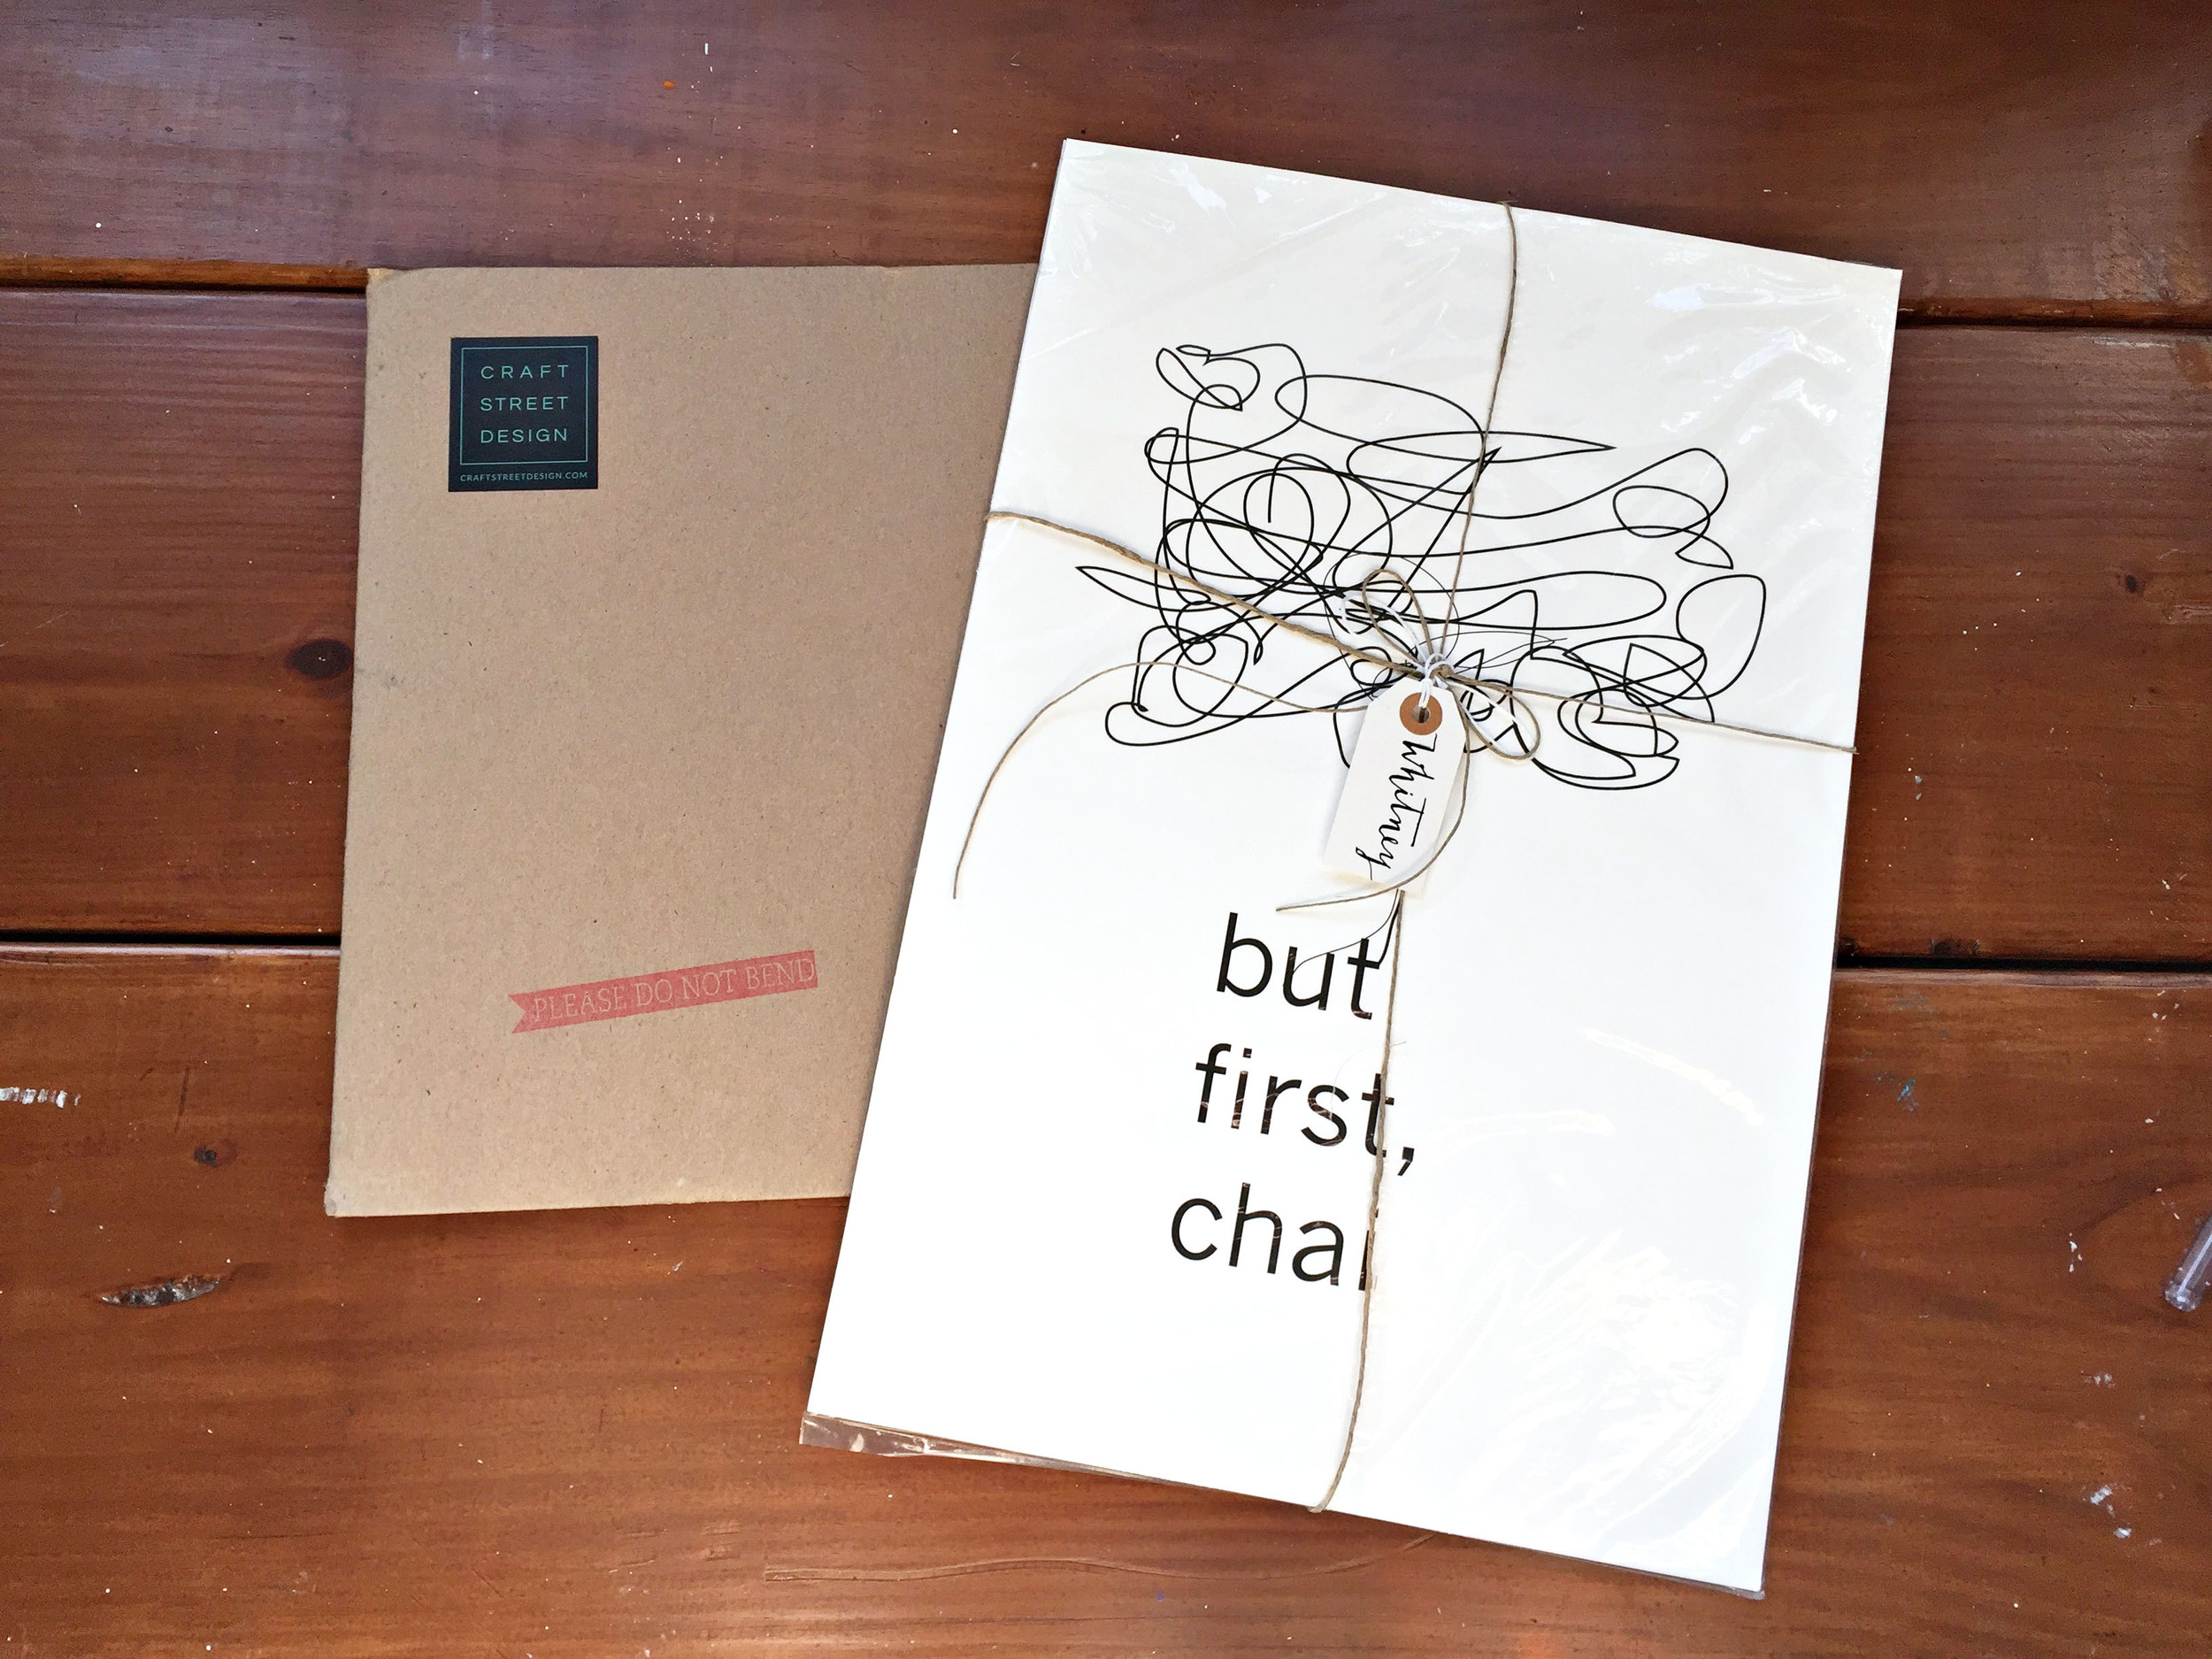 but first chai print by craft street design